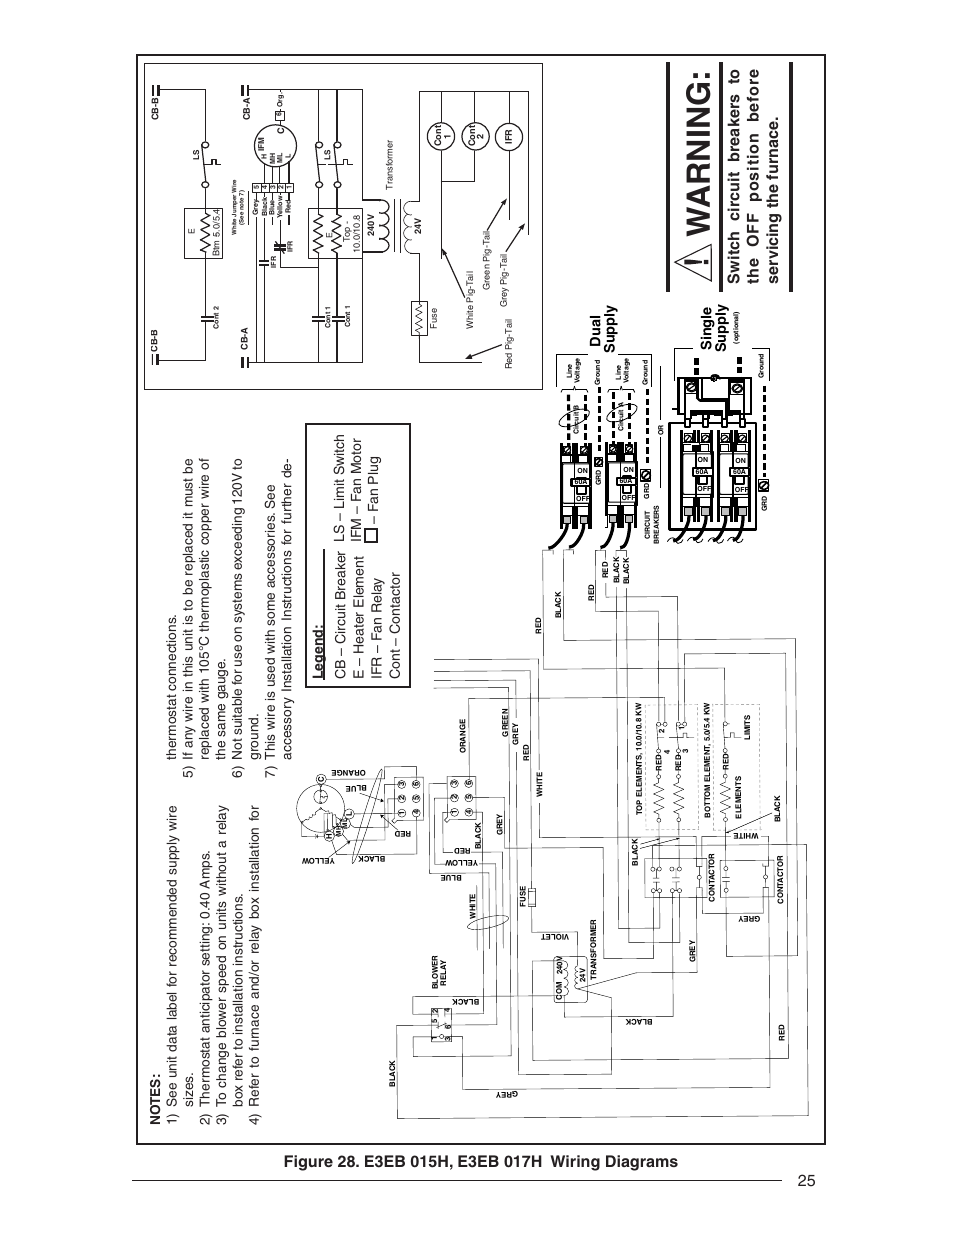 wiring diagram for intertherm furnace the wiring diagram mobile home intertherm furnace wiring diagram mobile wiring diagram